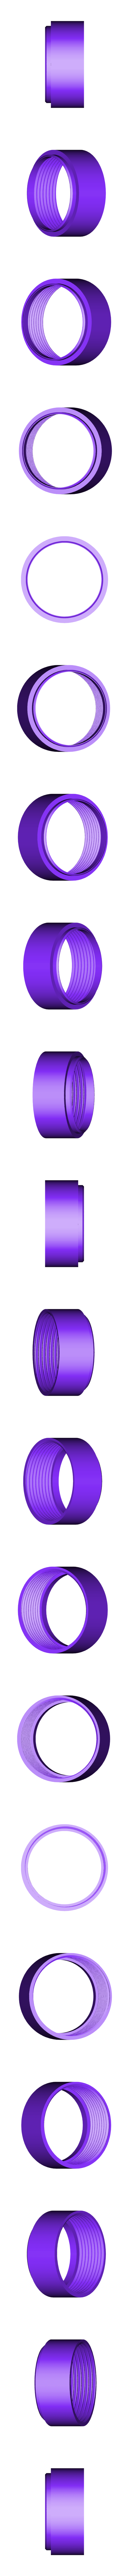 Screw-on-probetostick-joint.stl Download free STL file Probe stick for Si-8b (Си-8б) Geiger Müller tube • 3D print template, glassy